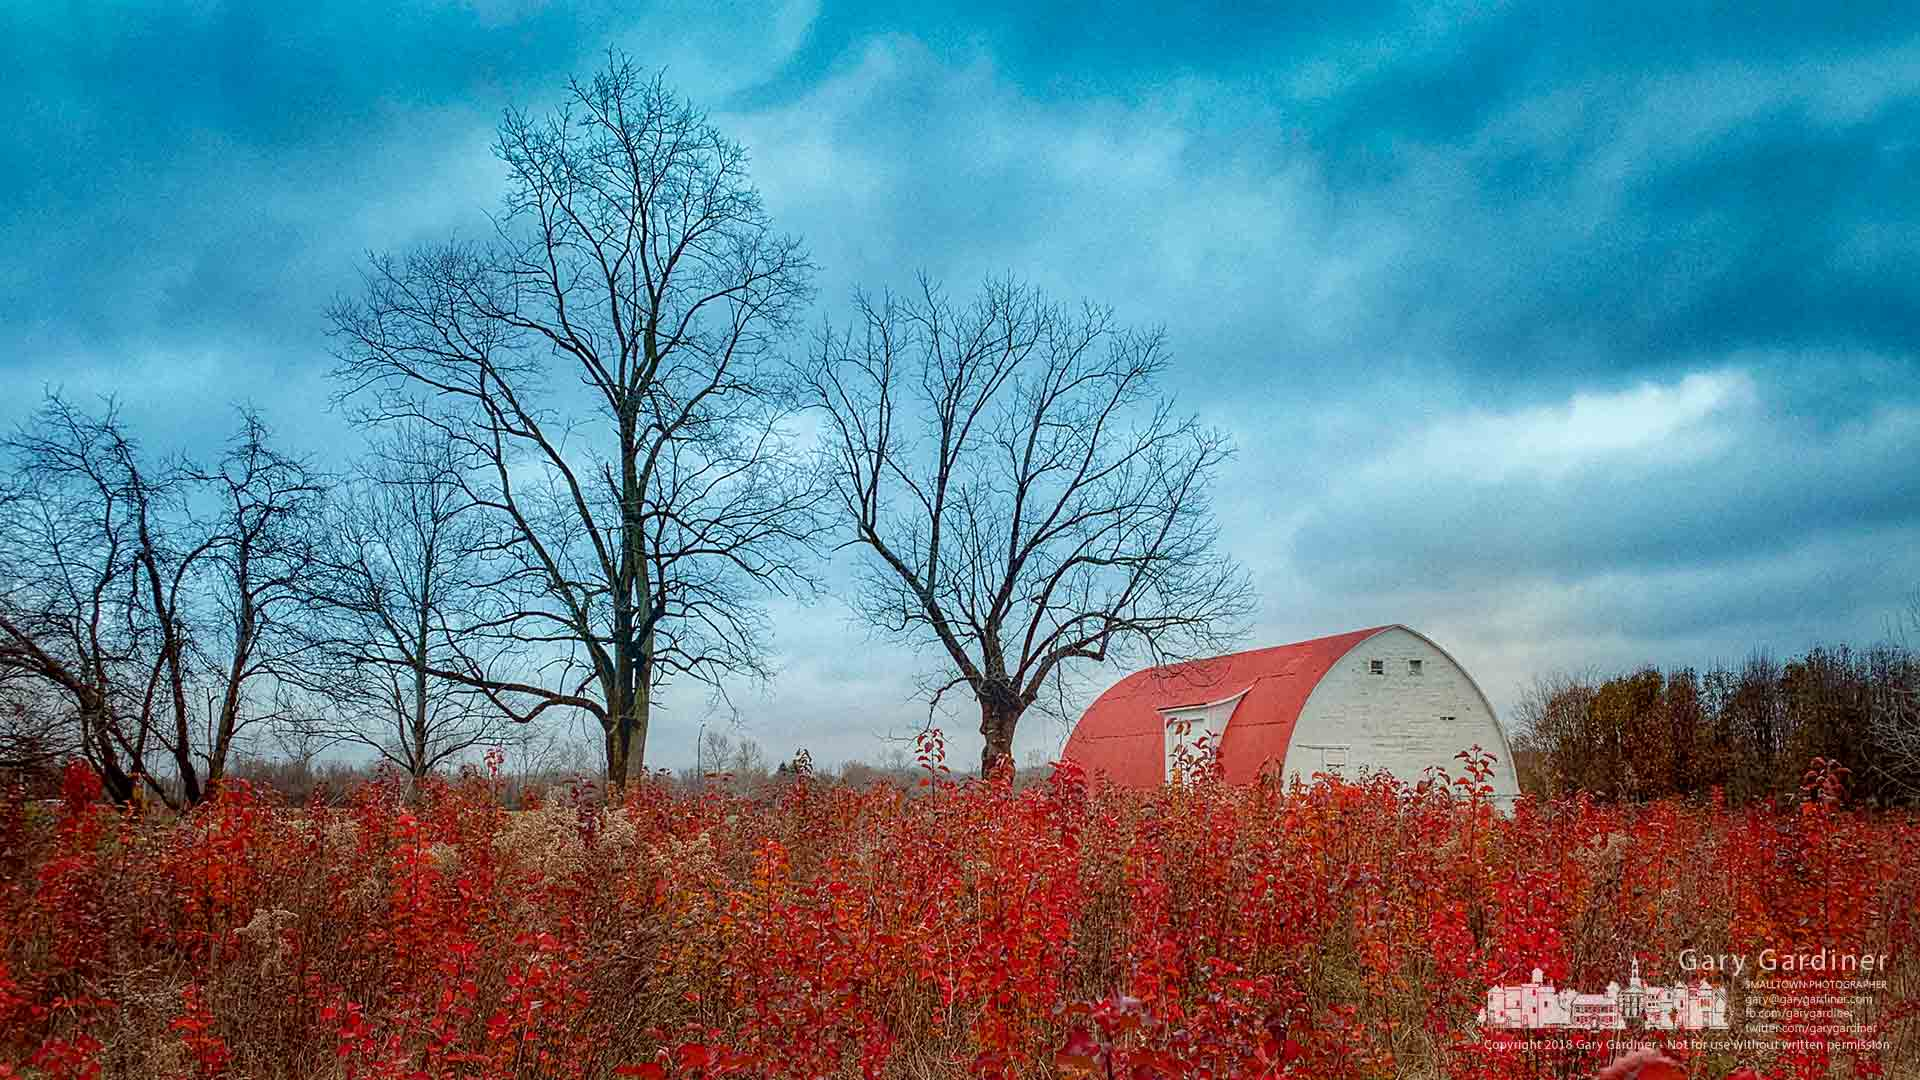 Wild pear trees, their leaves turned red in the fall, are the dominant deciduous tree growing on uncut sections of the Braun Farm. My Final Photo for Dec. 3, 2018